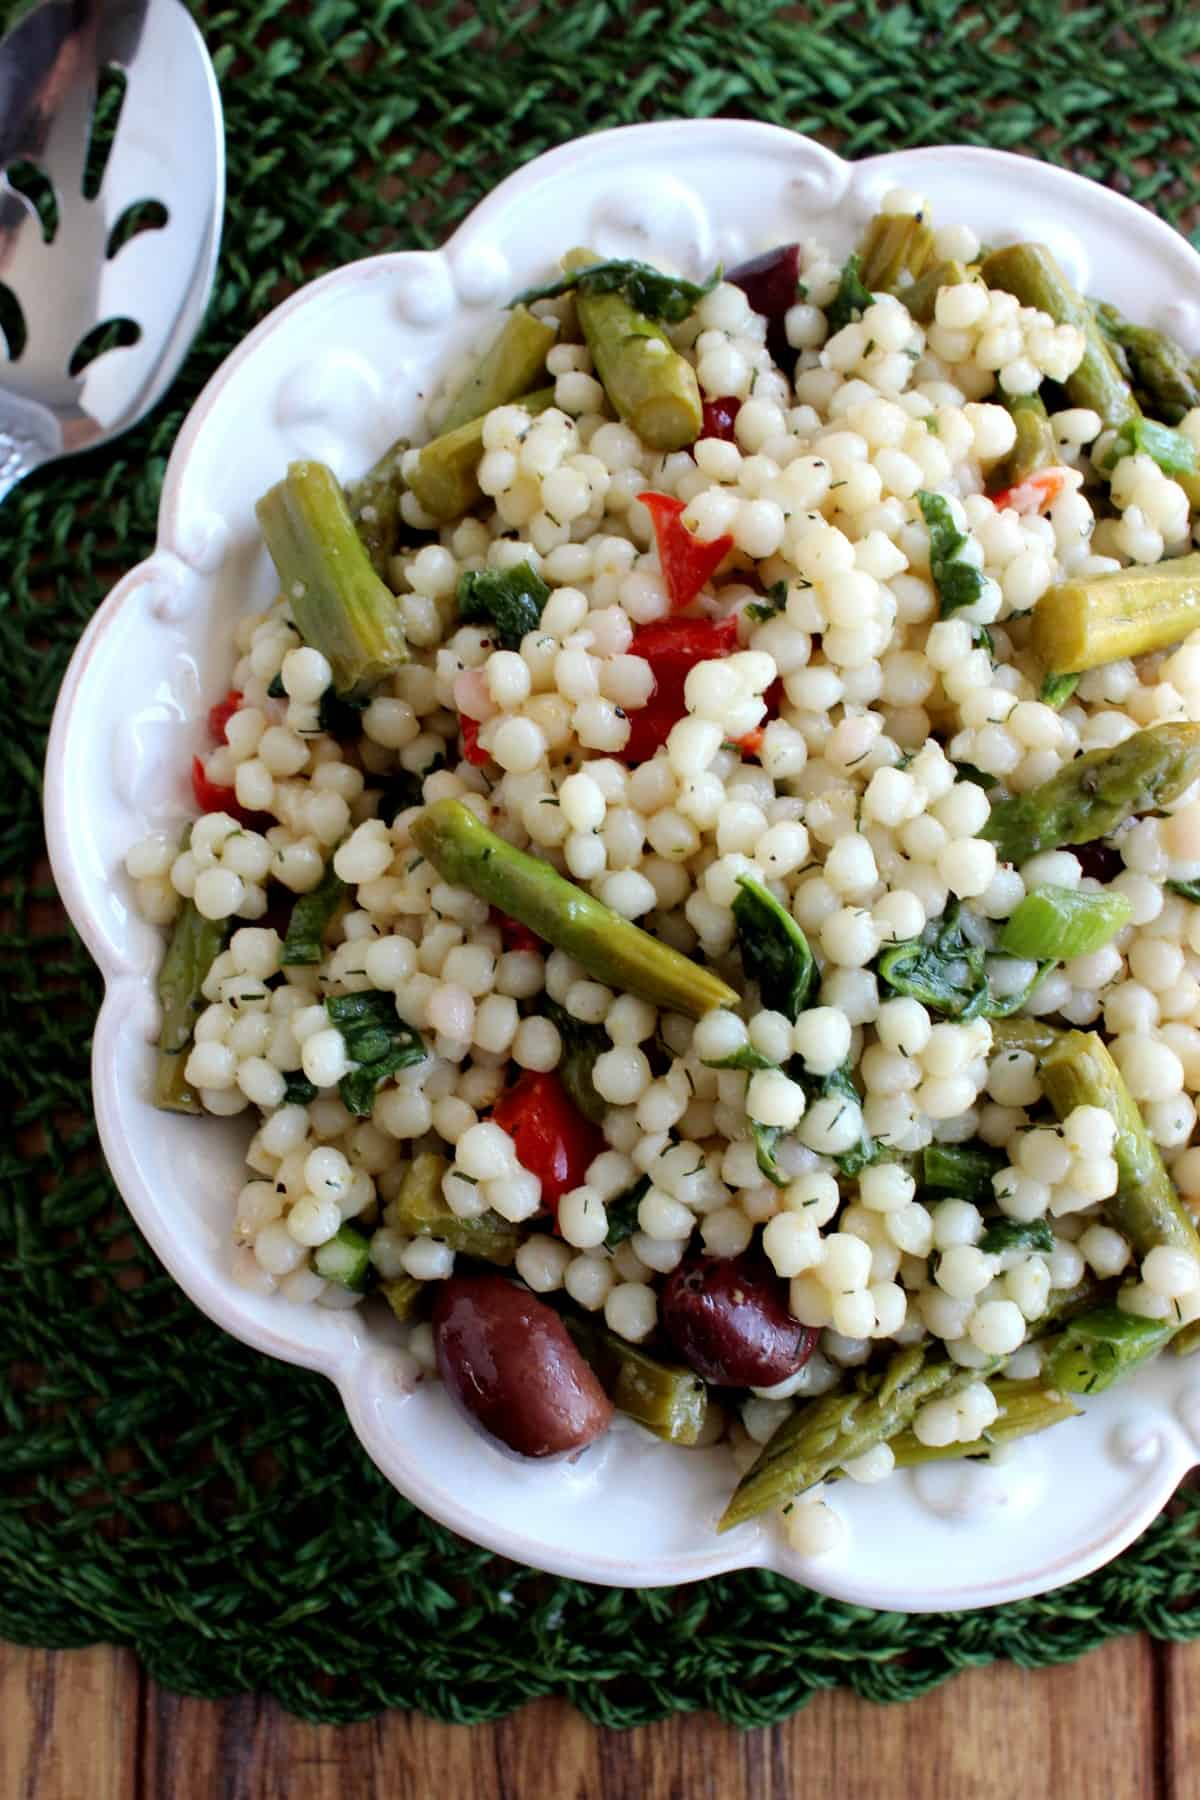 Overhead view of a cold salad in a white bowl filled with couscous, asparagus and more veggies.